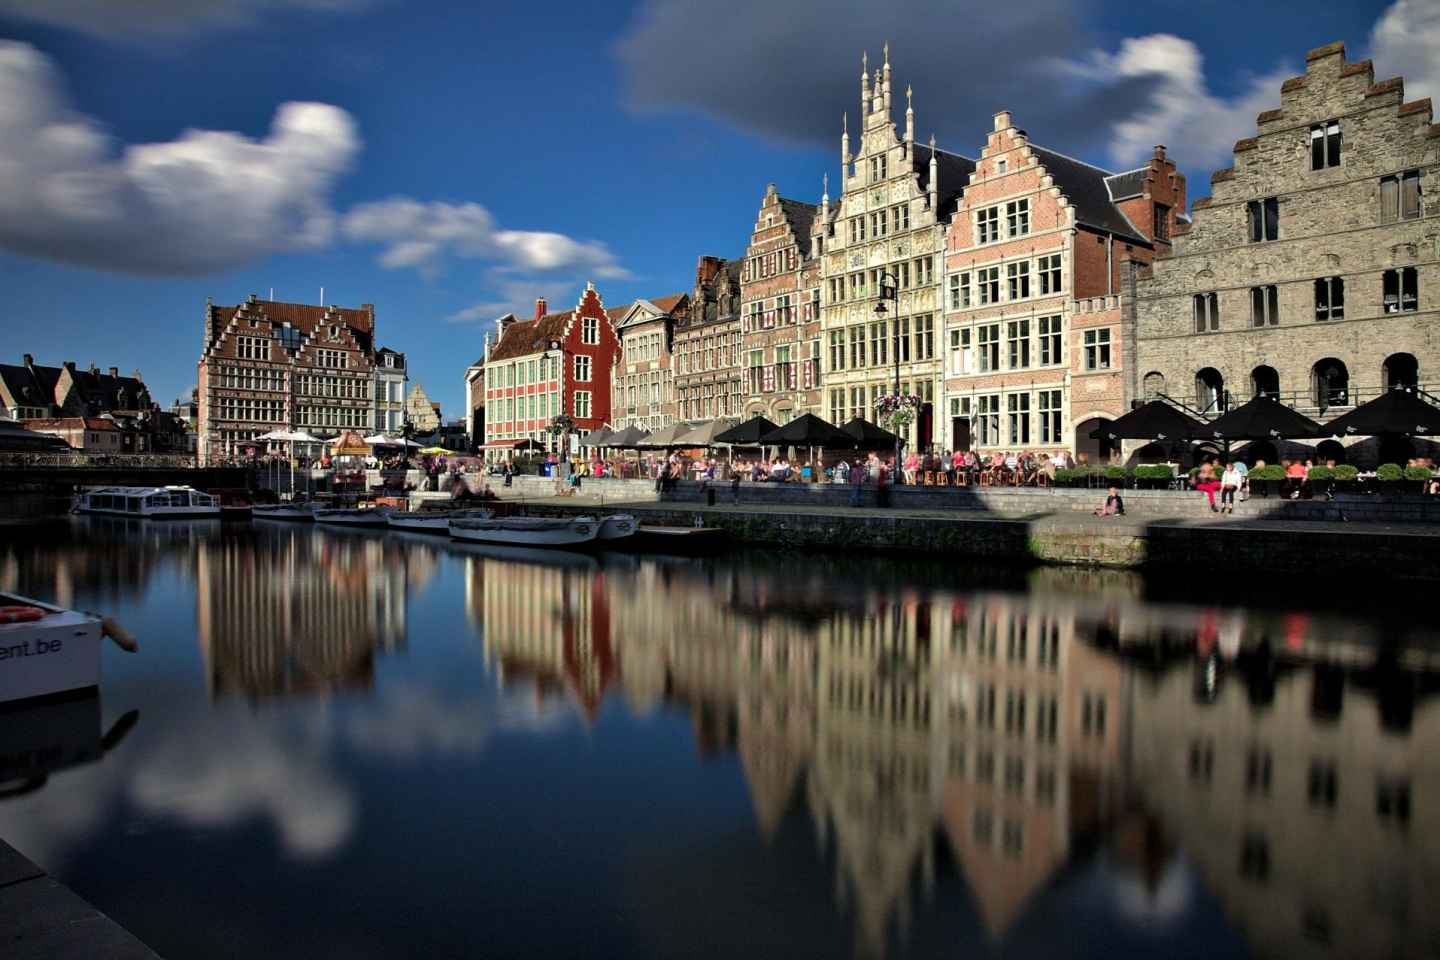 Ghent: 40-Minute Historical Boat Tour of City Center